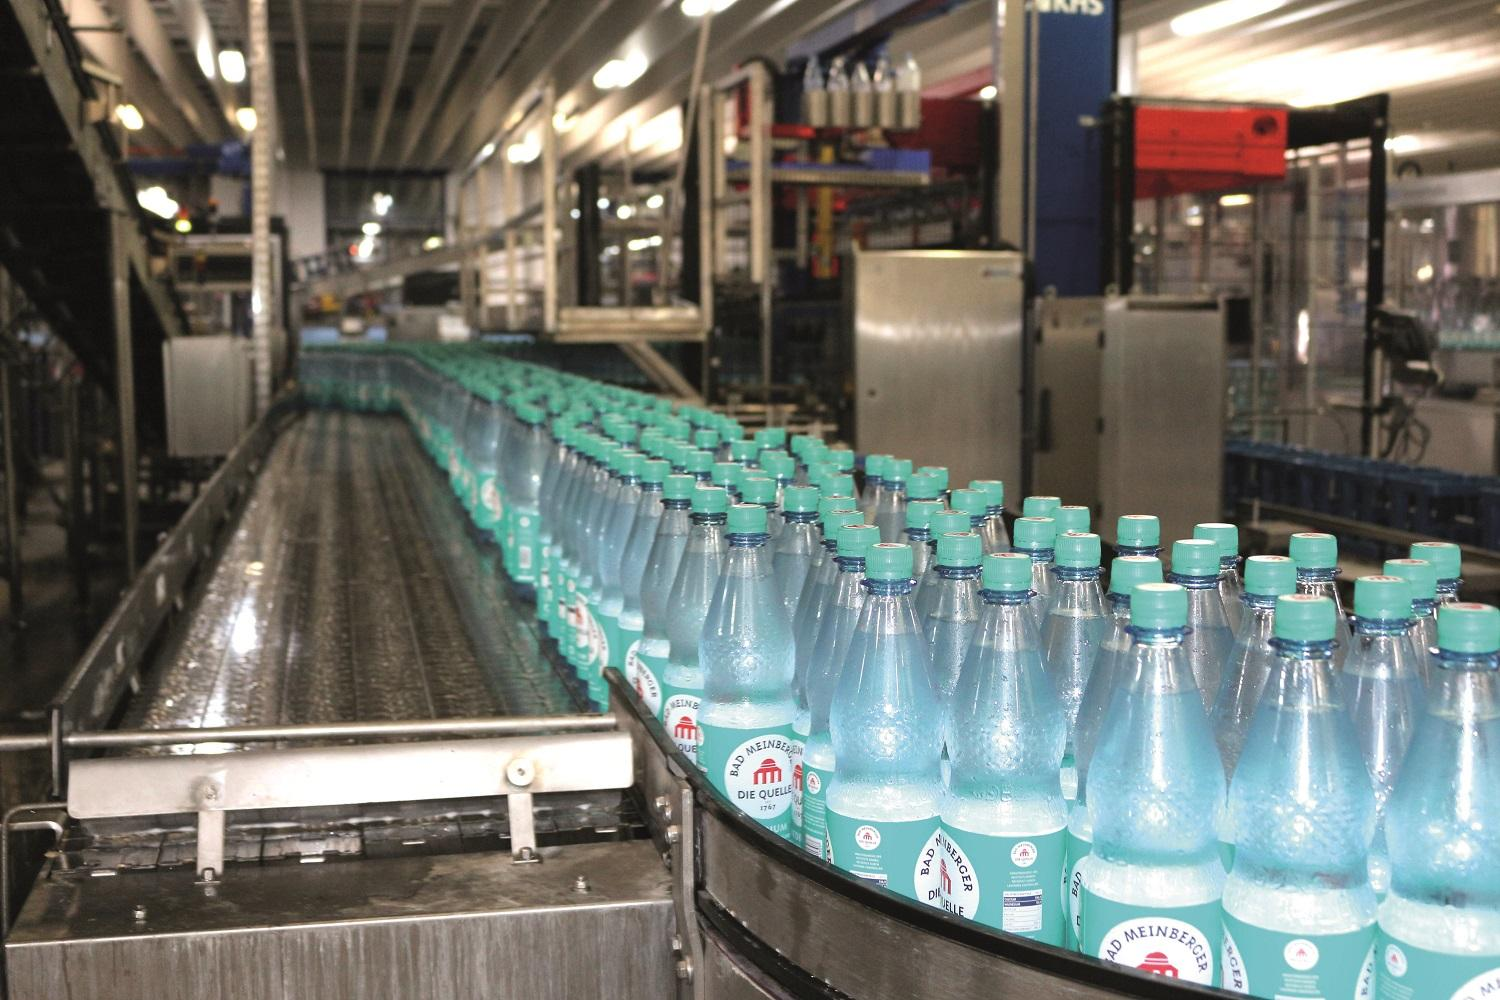 Bad Meinberger supplies mineral water and soft drinks based on mineral water.  The required food safety levels must be guaranteed during all production processes